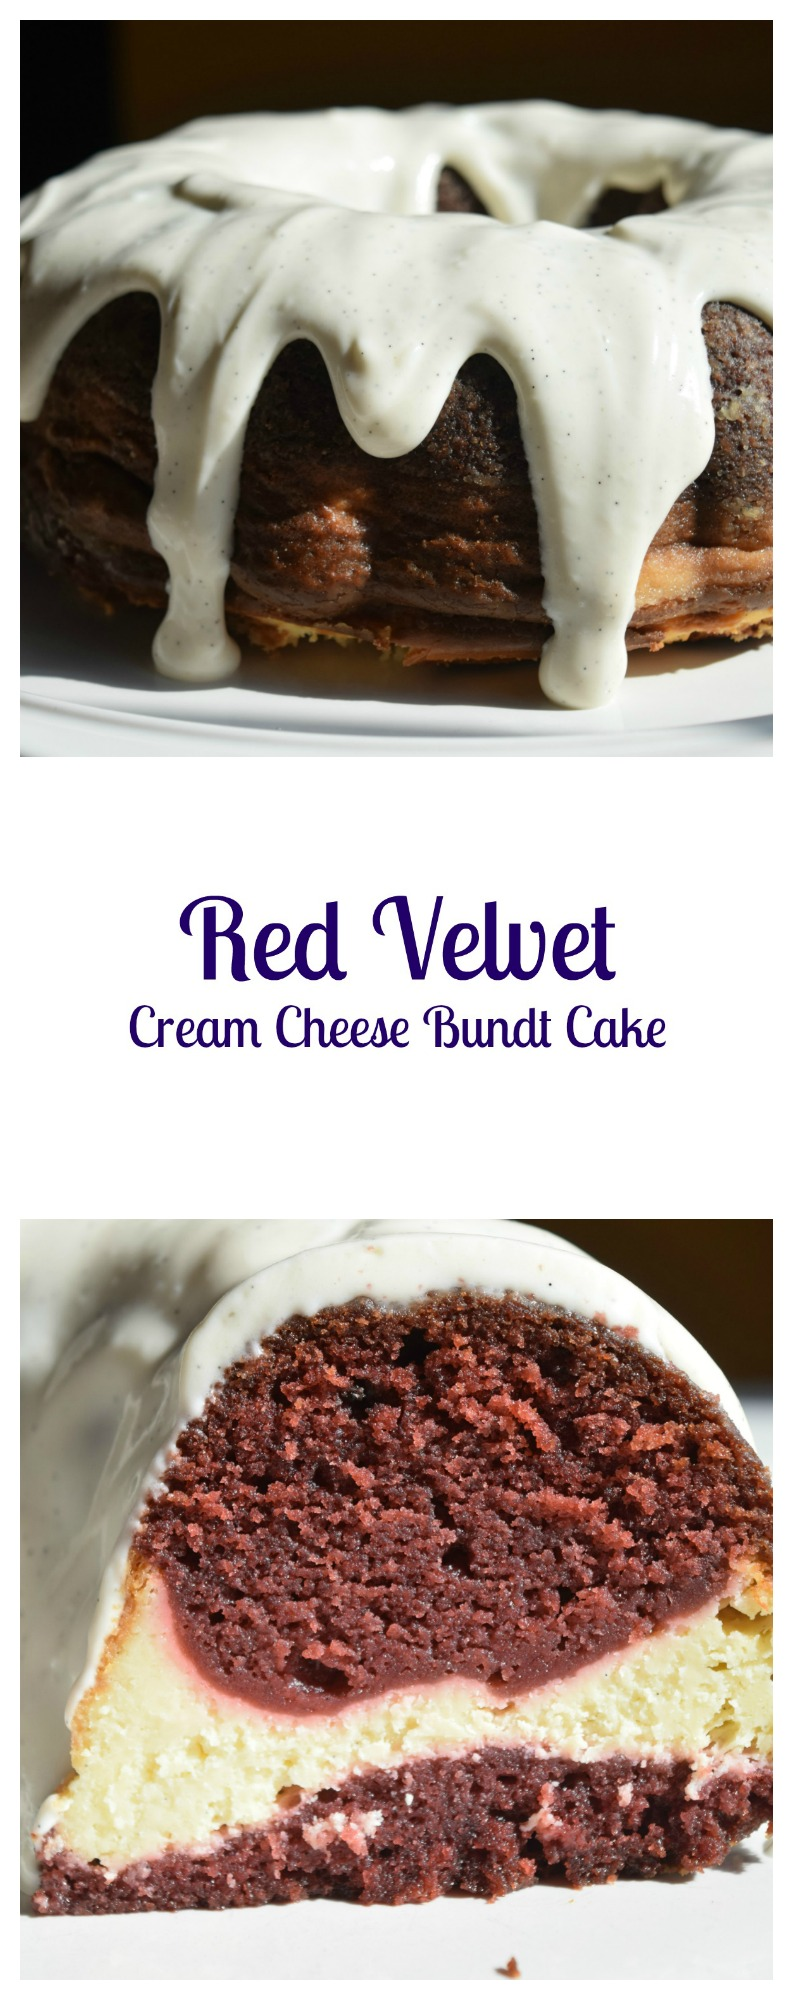 Red Velvet Strawberry Layer Cake With Cream Cheese Frosting